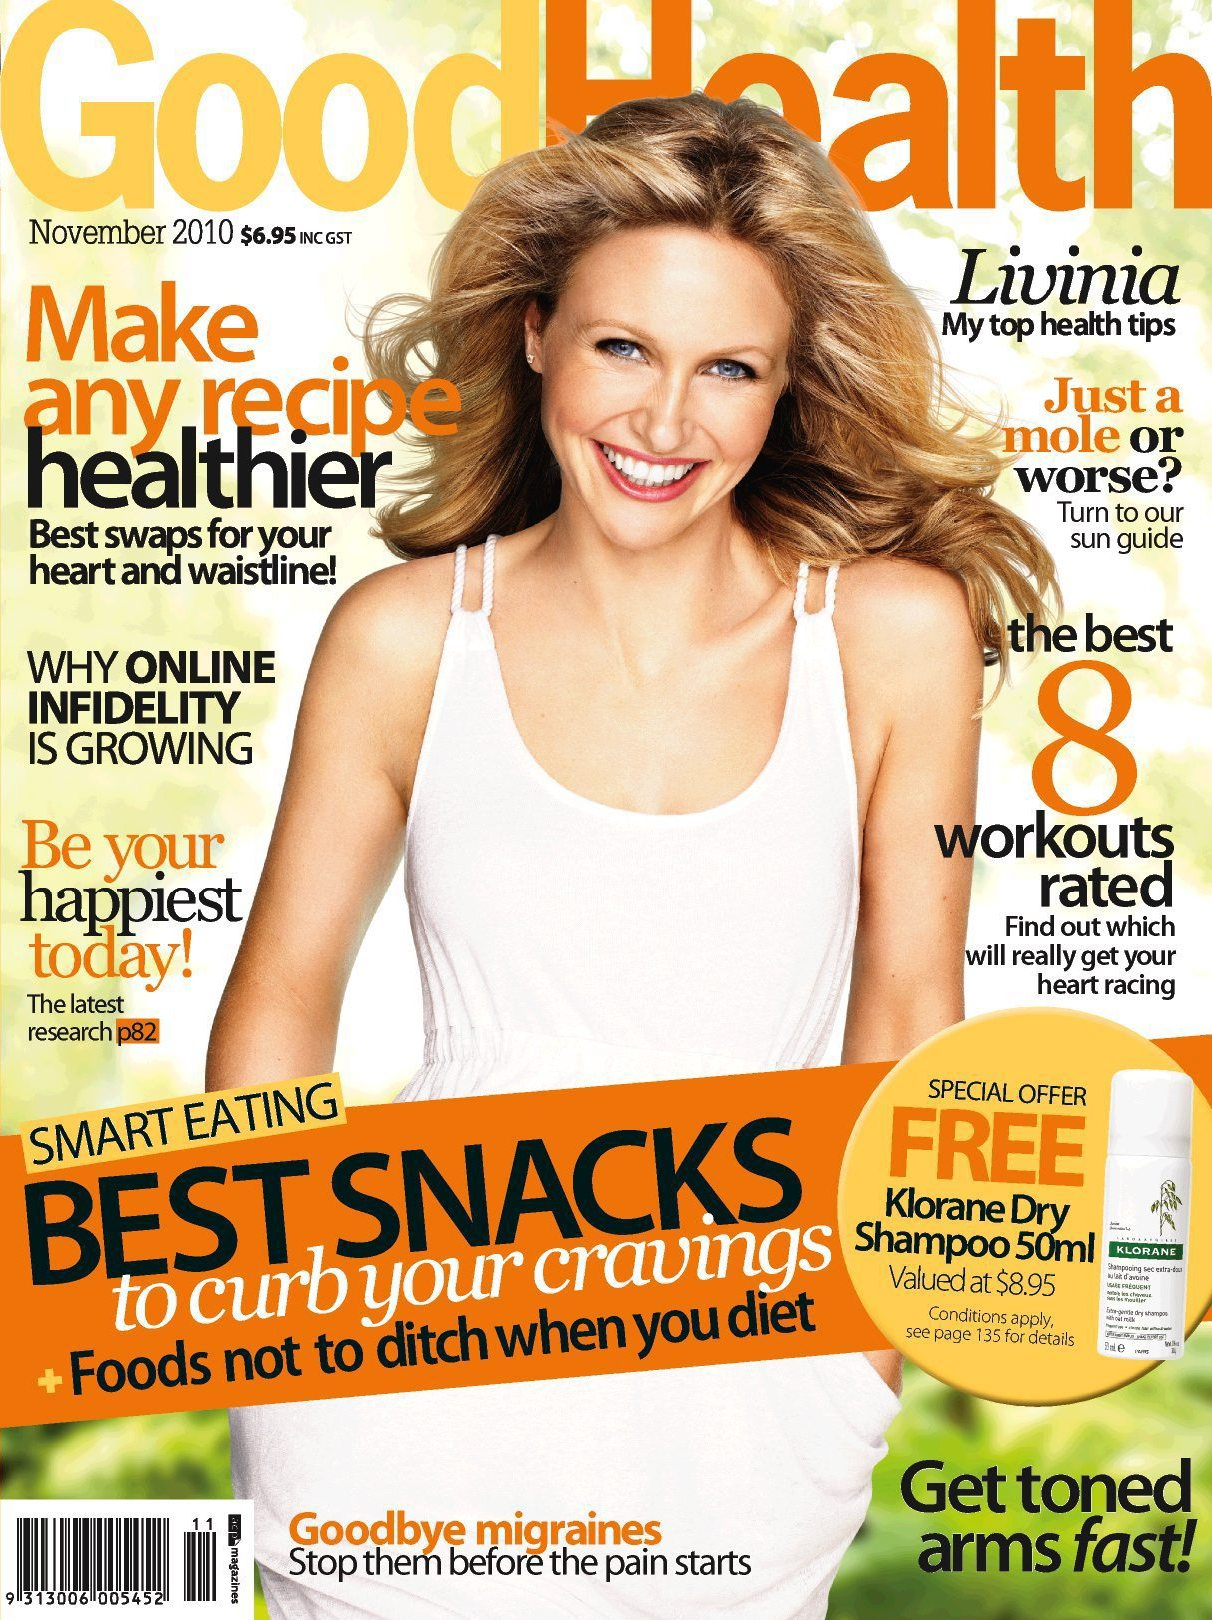 Happiness Is Catching In The New Issue Of Good Health Magazine